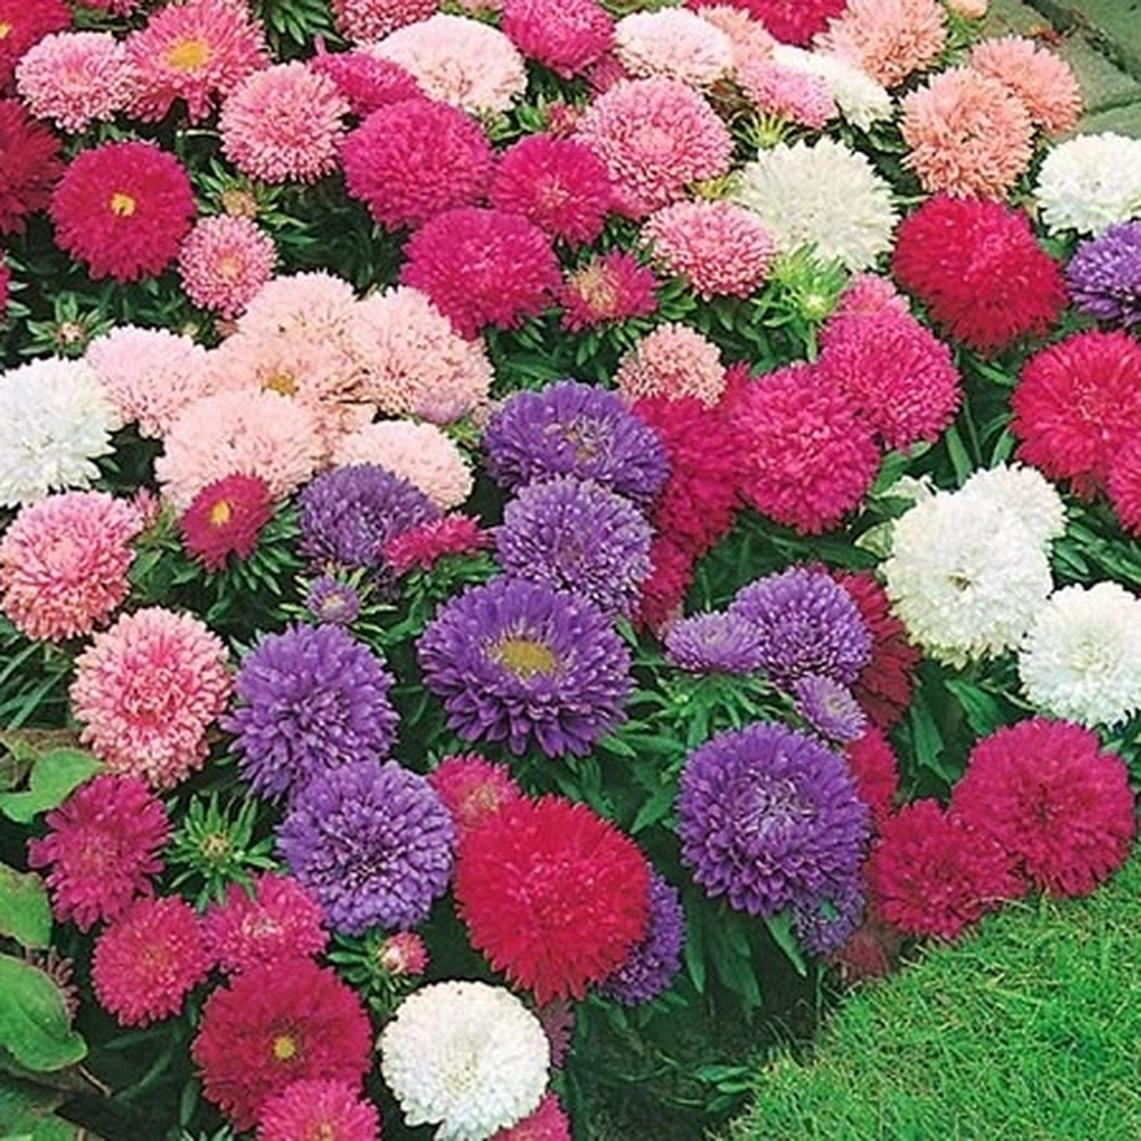 China Aster Seeds - Giants of California